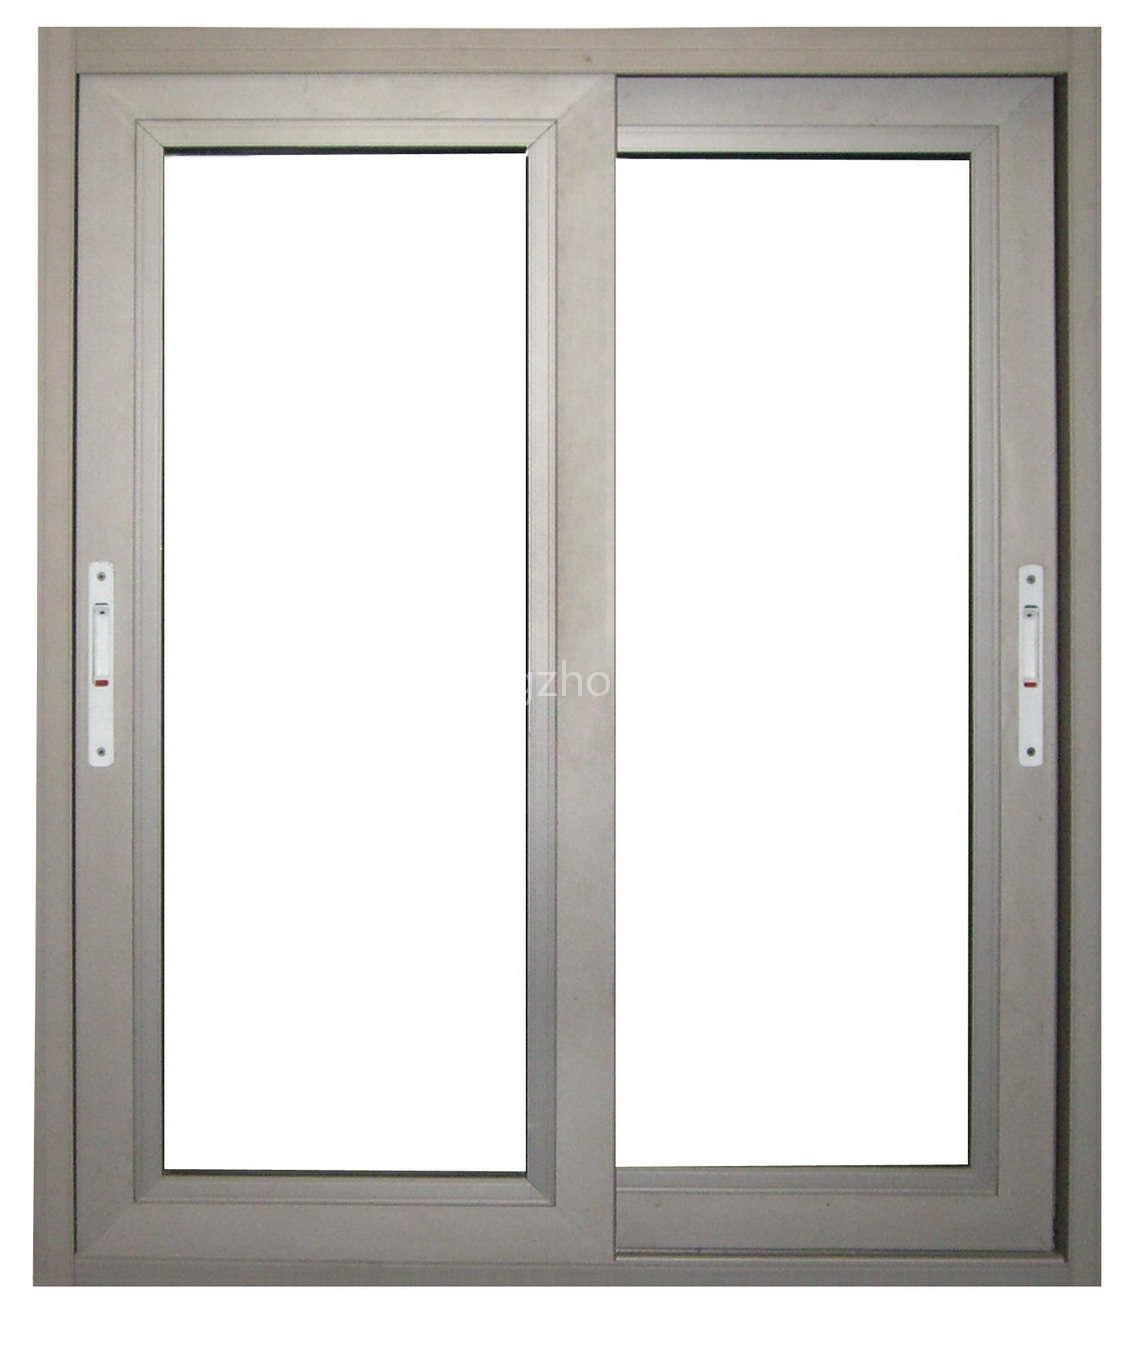 Aluminum Slider Windows : Aluminum frame windows parts tapdance